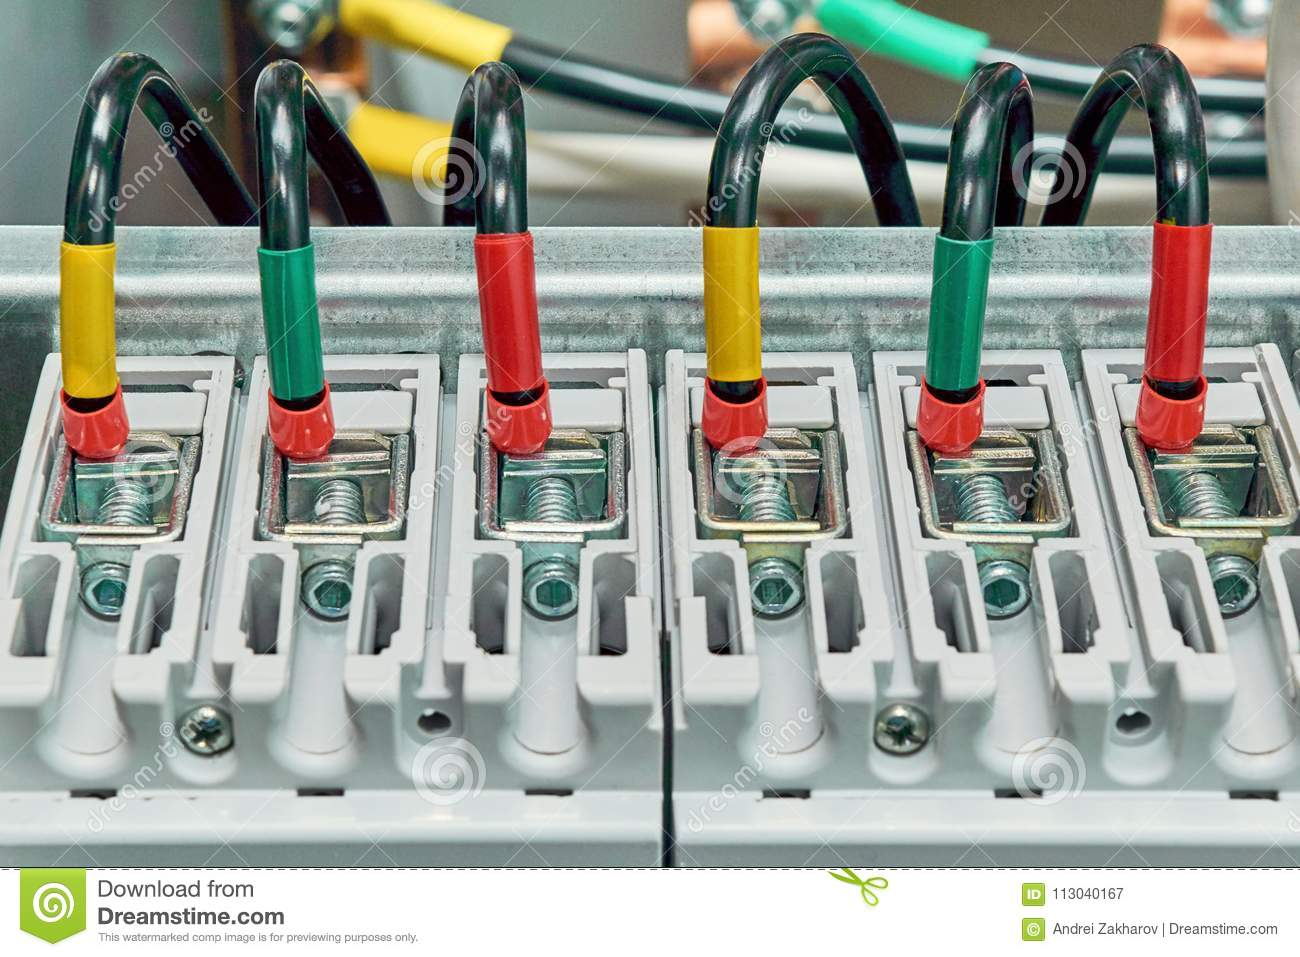 Range Of Electrical Wires Or Cables Are Connected To The Power Wiring Circuit Breaker Breakers